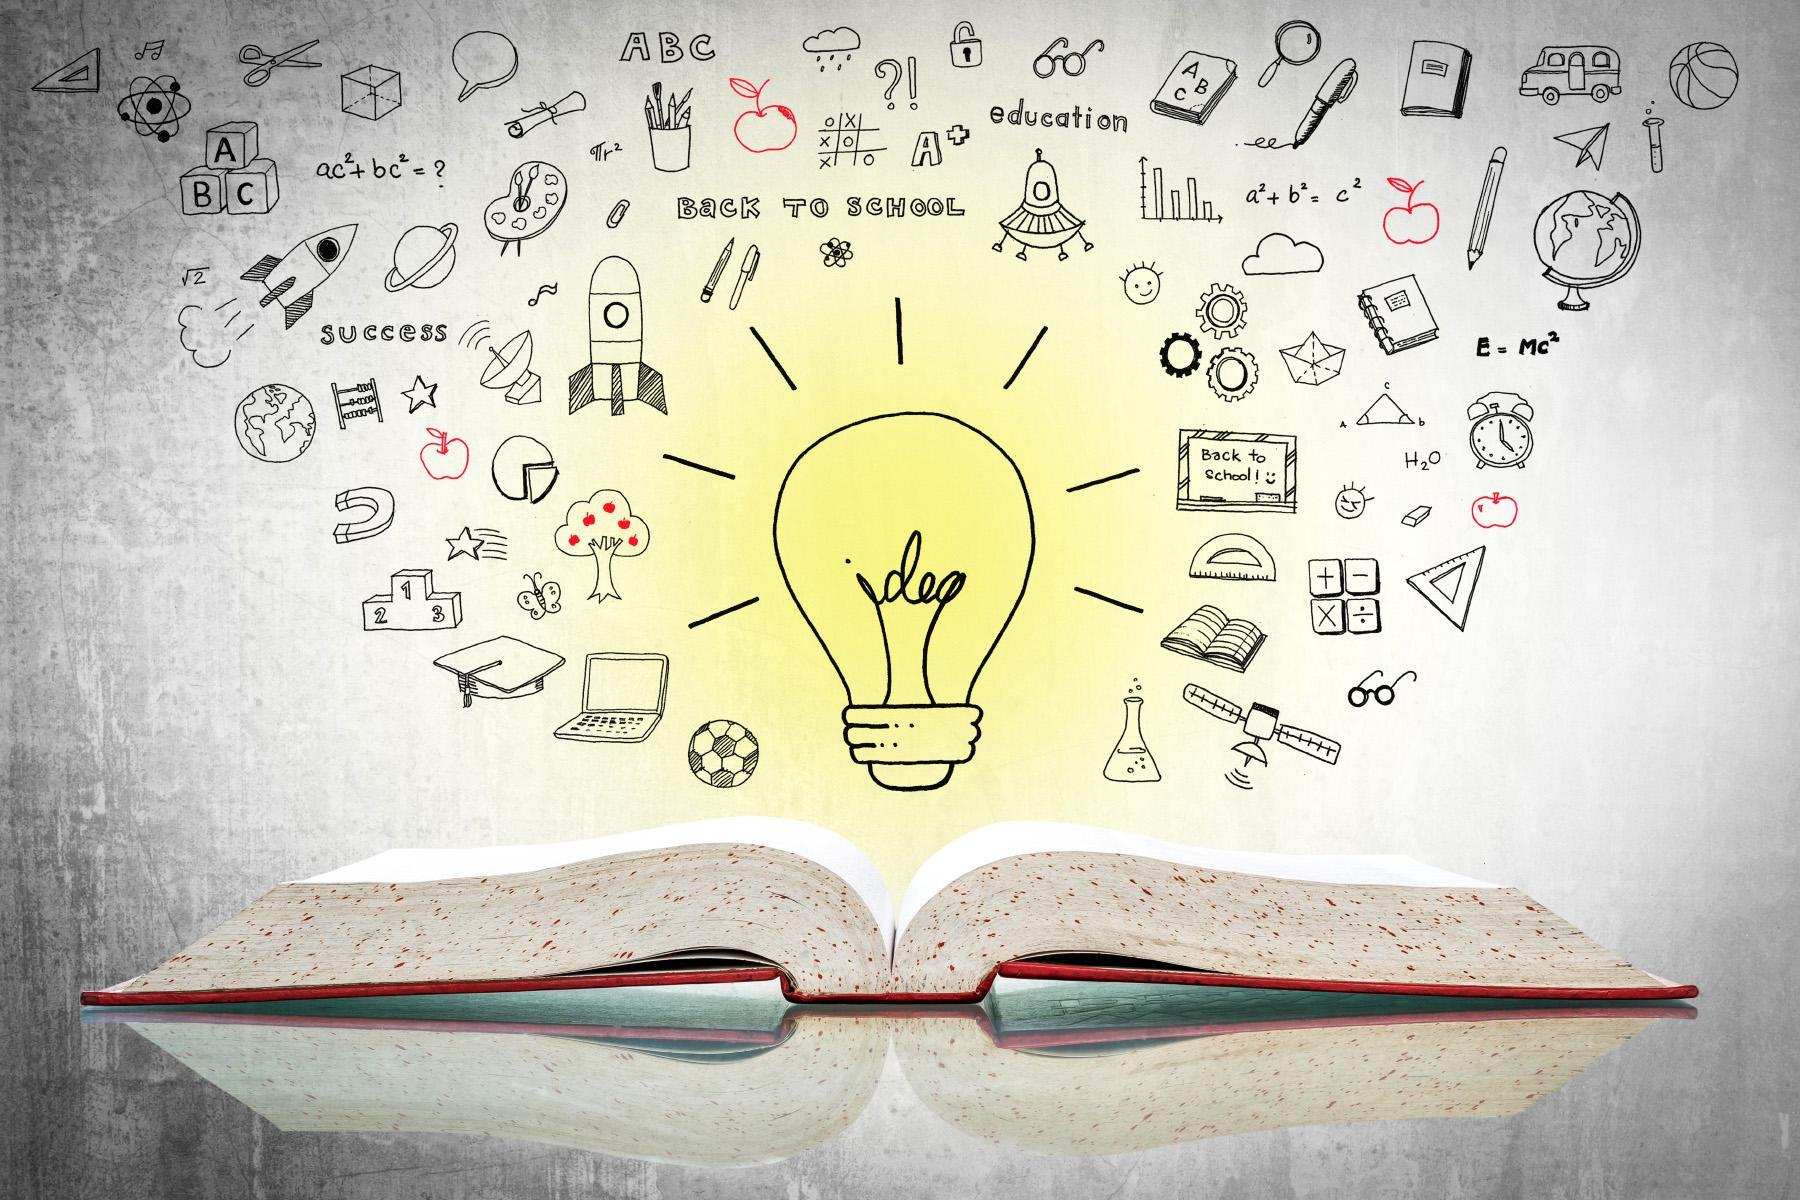 Design concept with an open book and a lightbulb with ideas represented by doodles